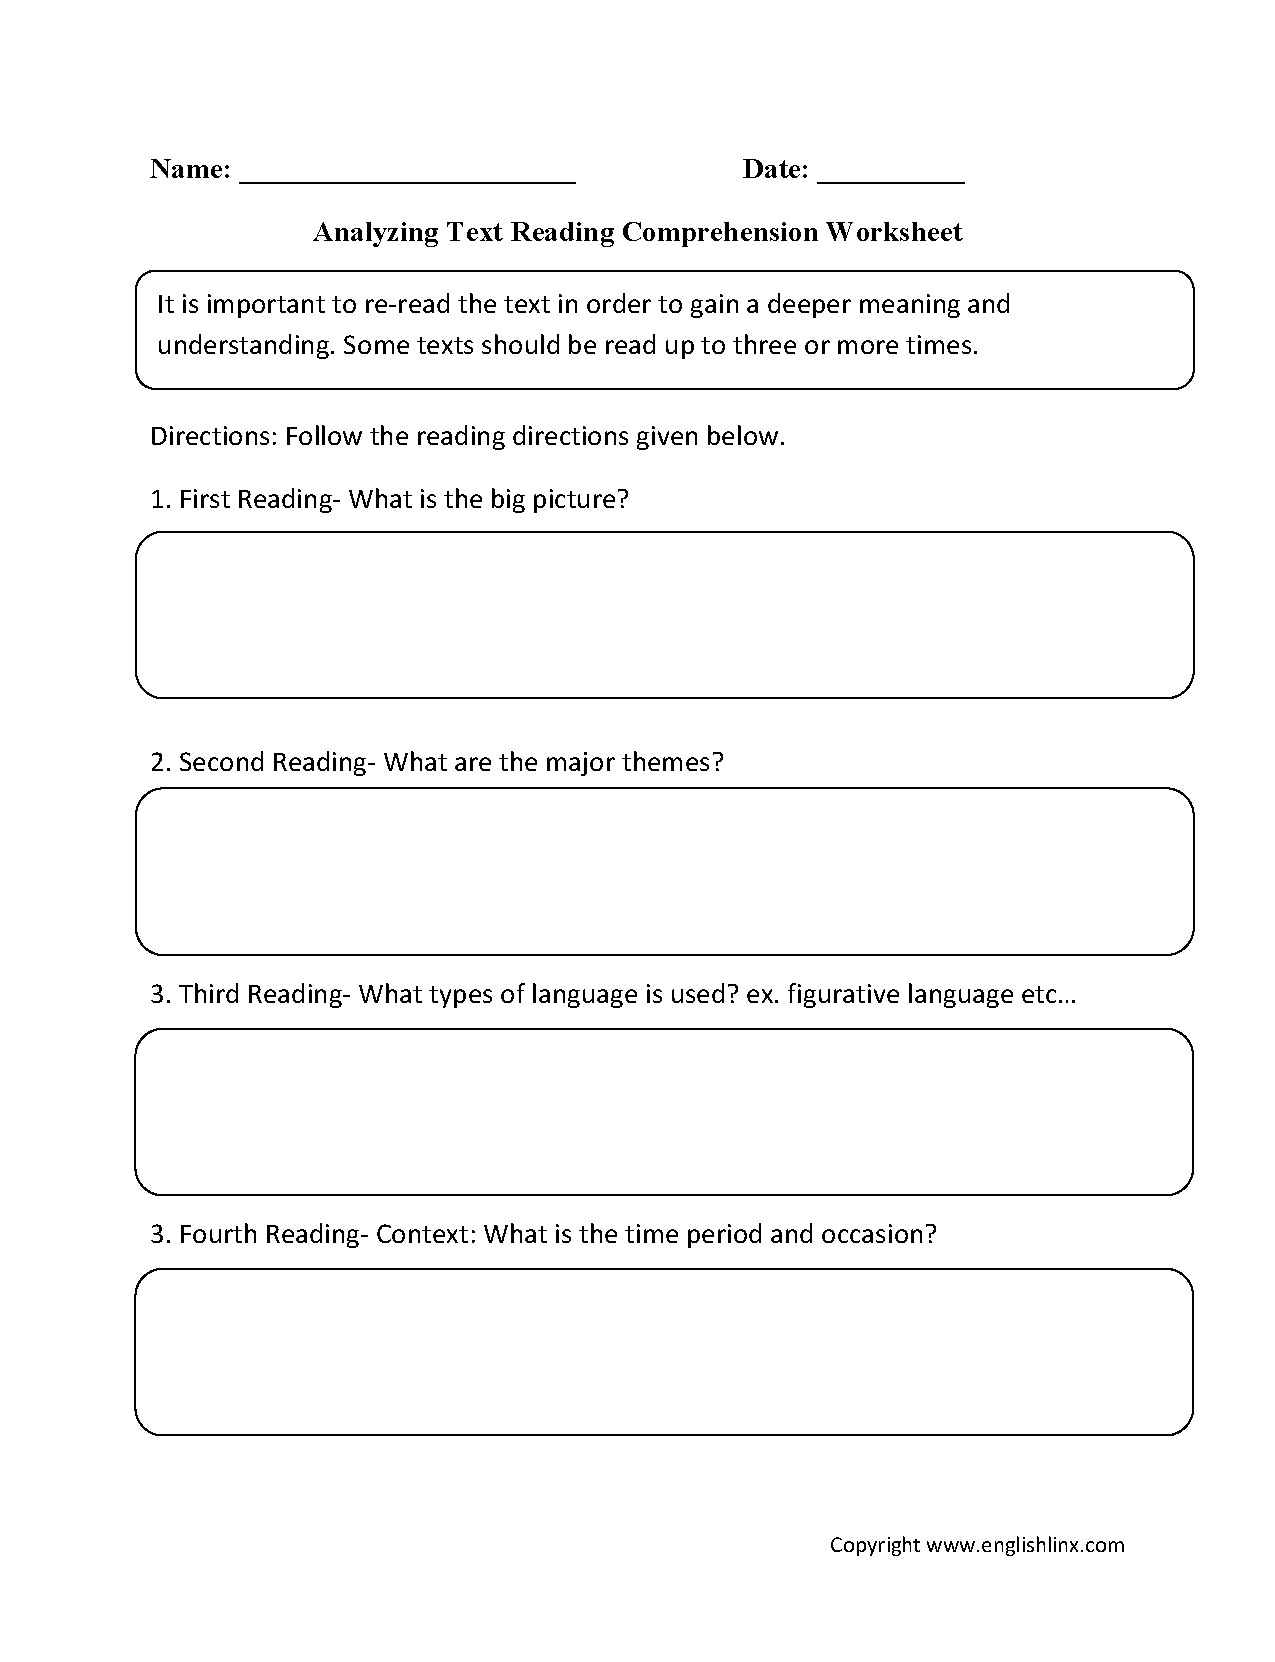 Worksheets Www.reading Comprehension Worksheets englishlinx com reading comprehension worksheets worksheets